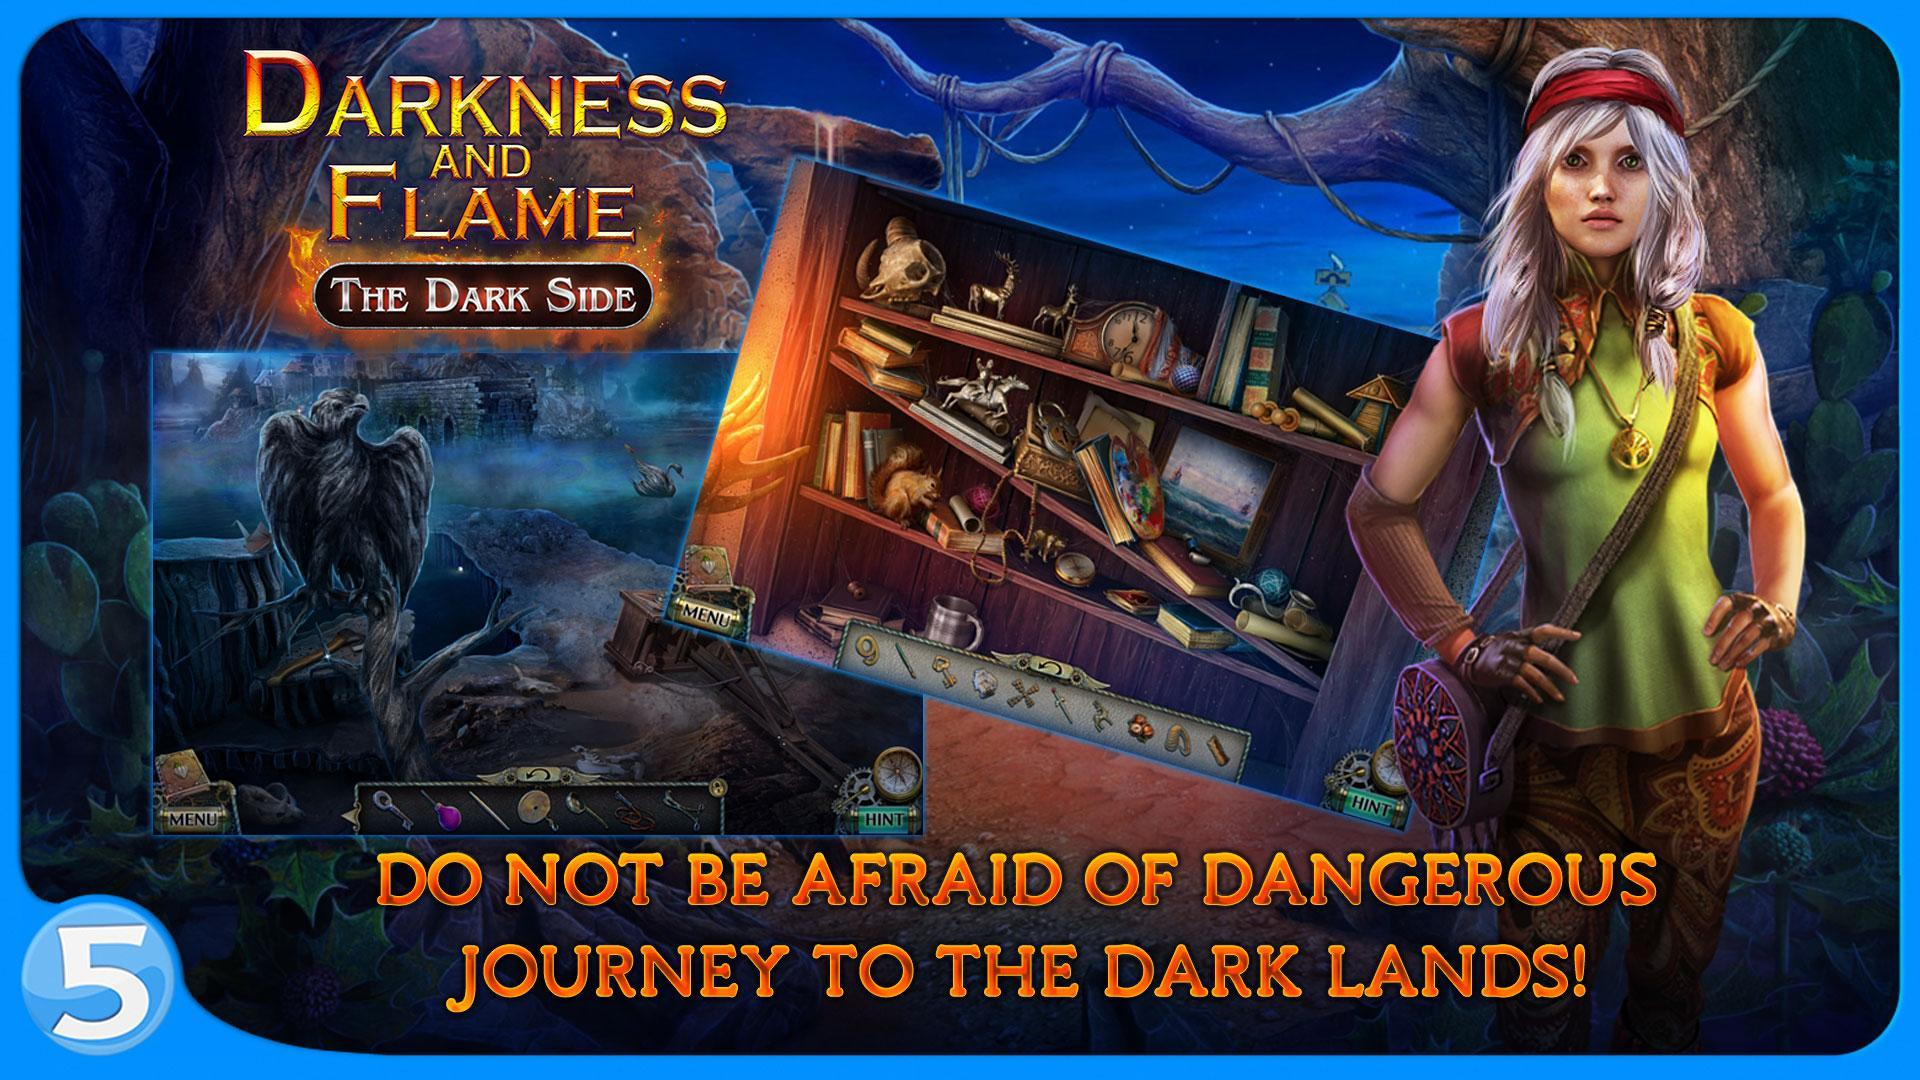 Darkness and Flame 3 for Android - APK Download